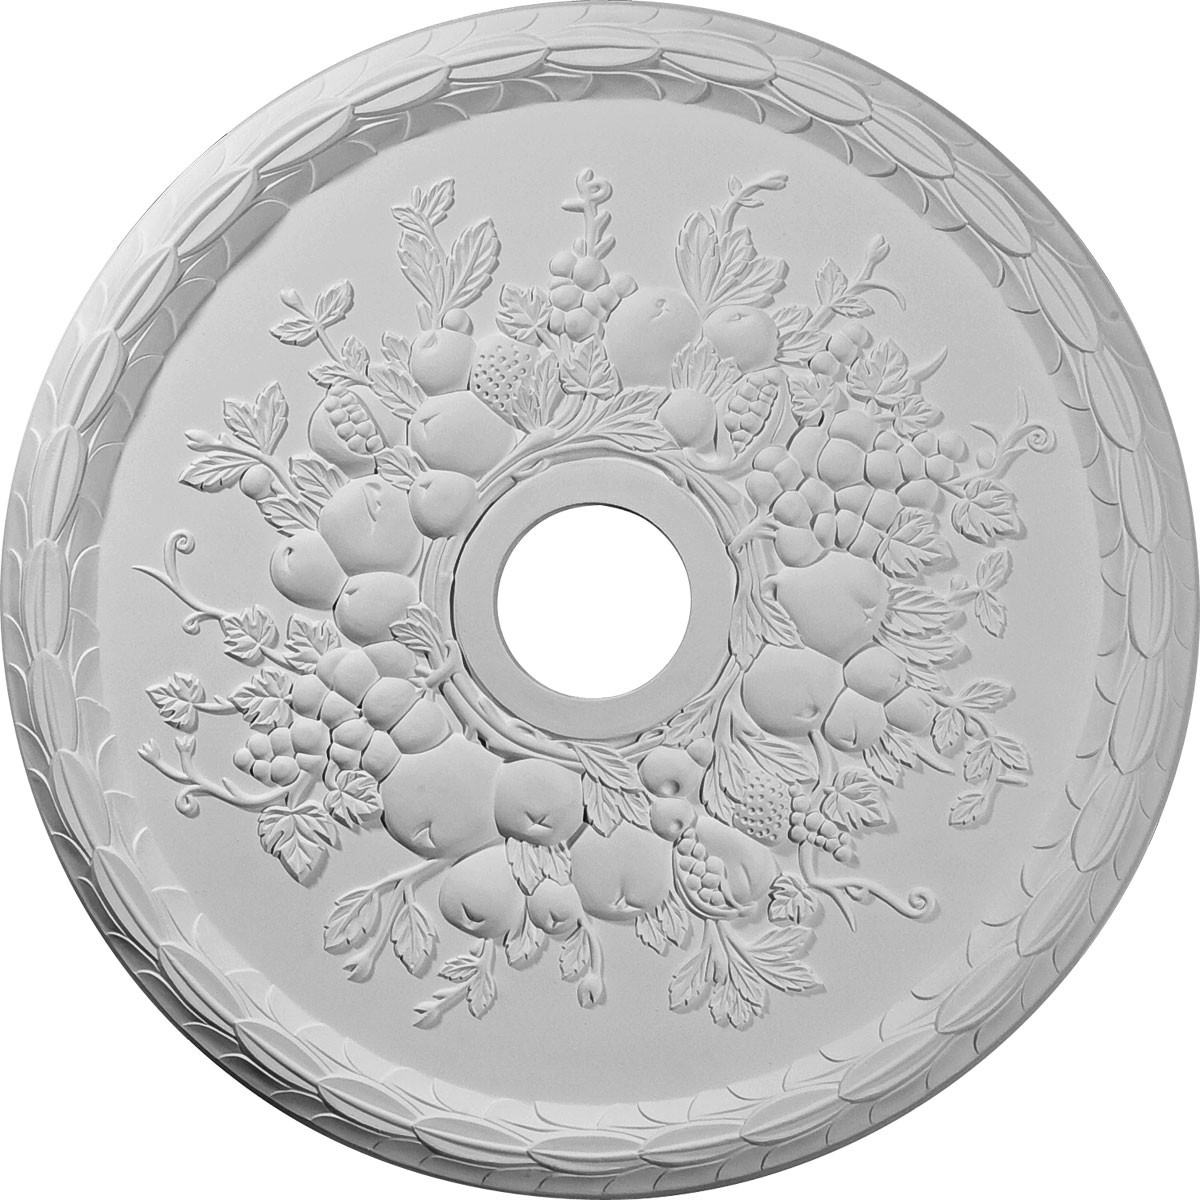 """EM-CM22GR - 22 5/8""""OD x 3 5/8""""ID x 5/8""""P Grape Ceiling Medallion (Fits Canopies up to 3 5/8"""")"""